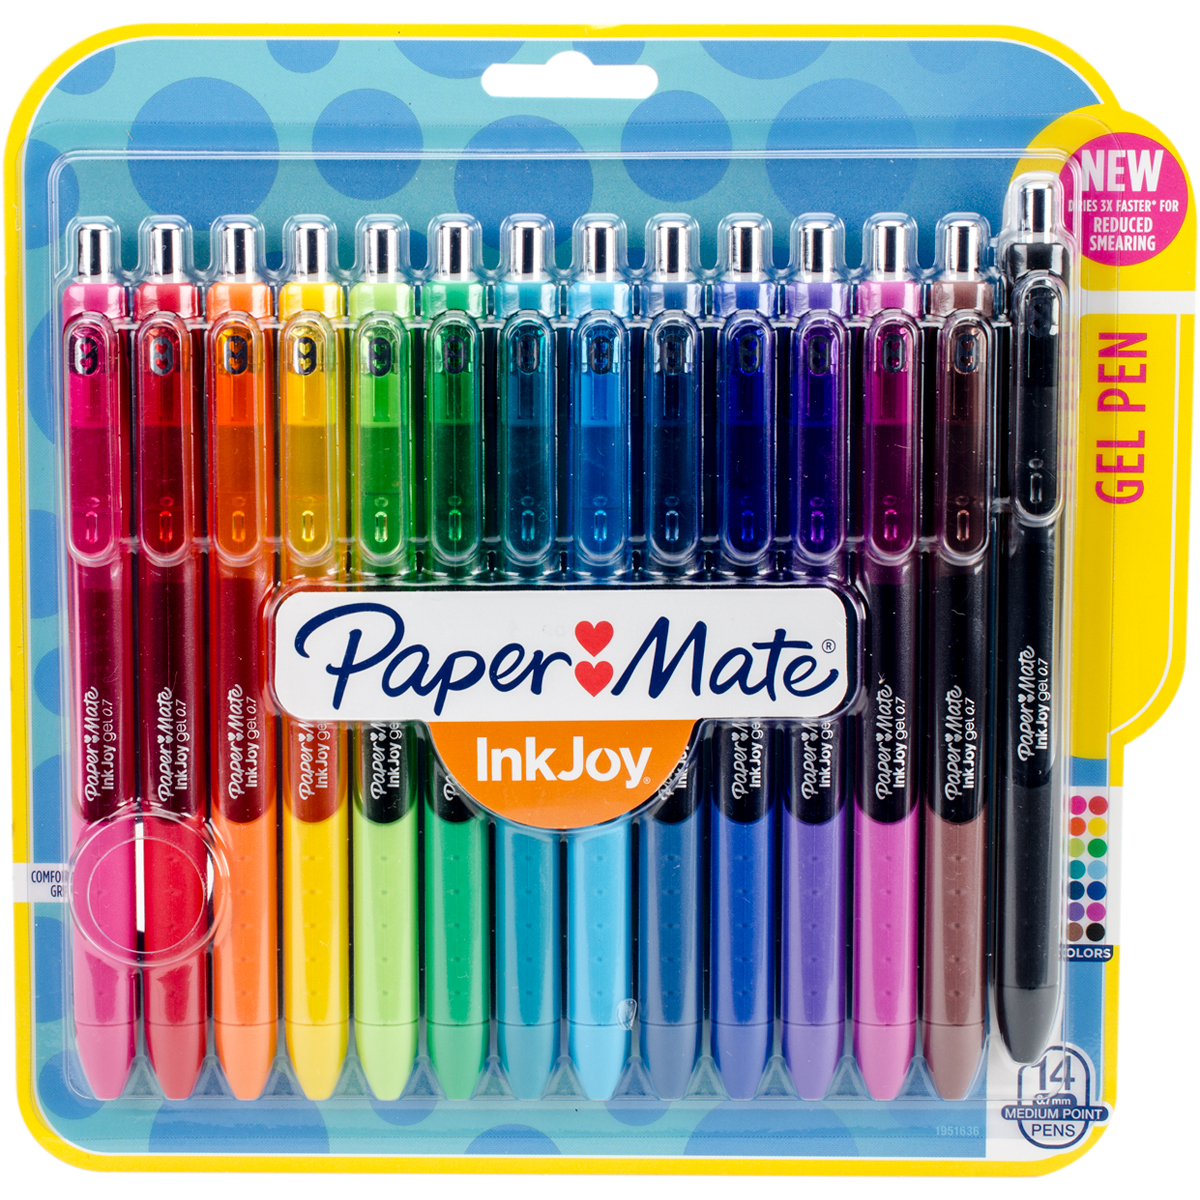 Paper Mate Gel Pens 1951636 | InkJoy Pens Medium Point, Assorted, .7mm, 14 Count